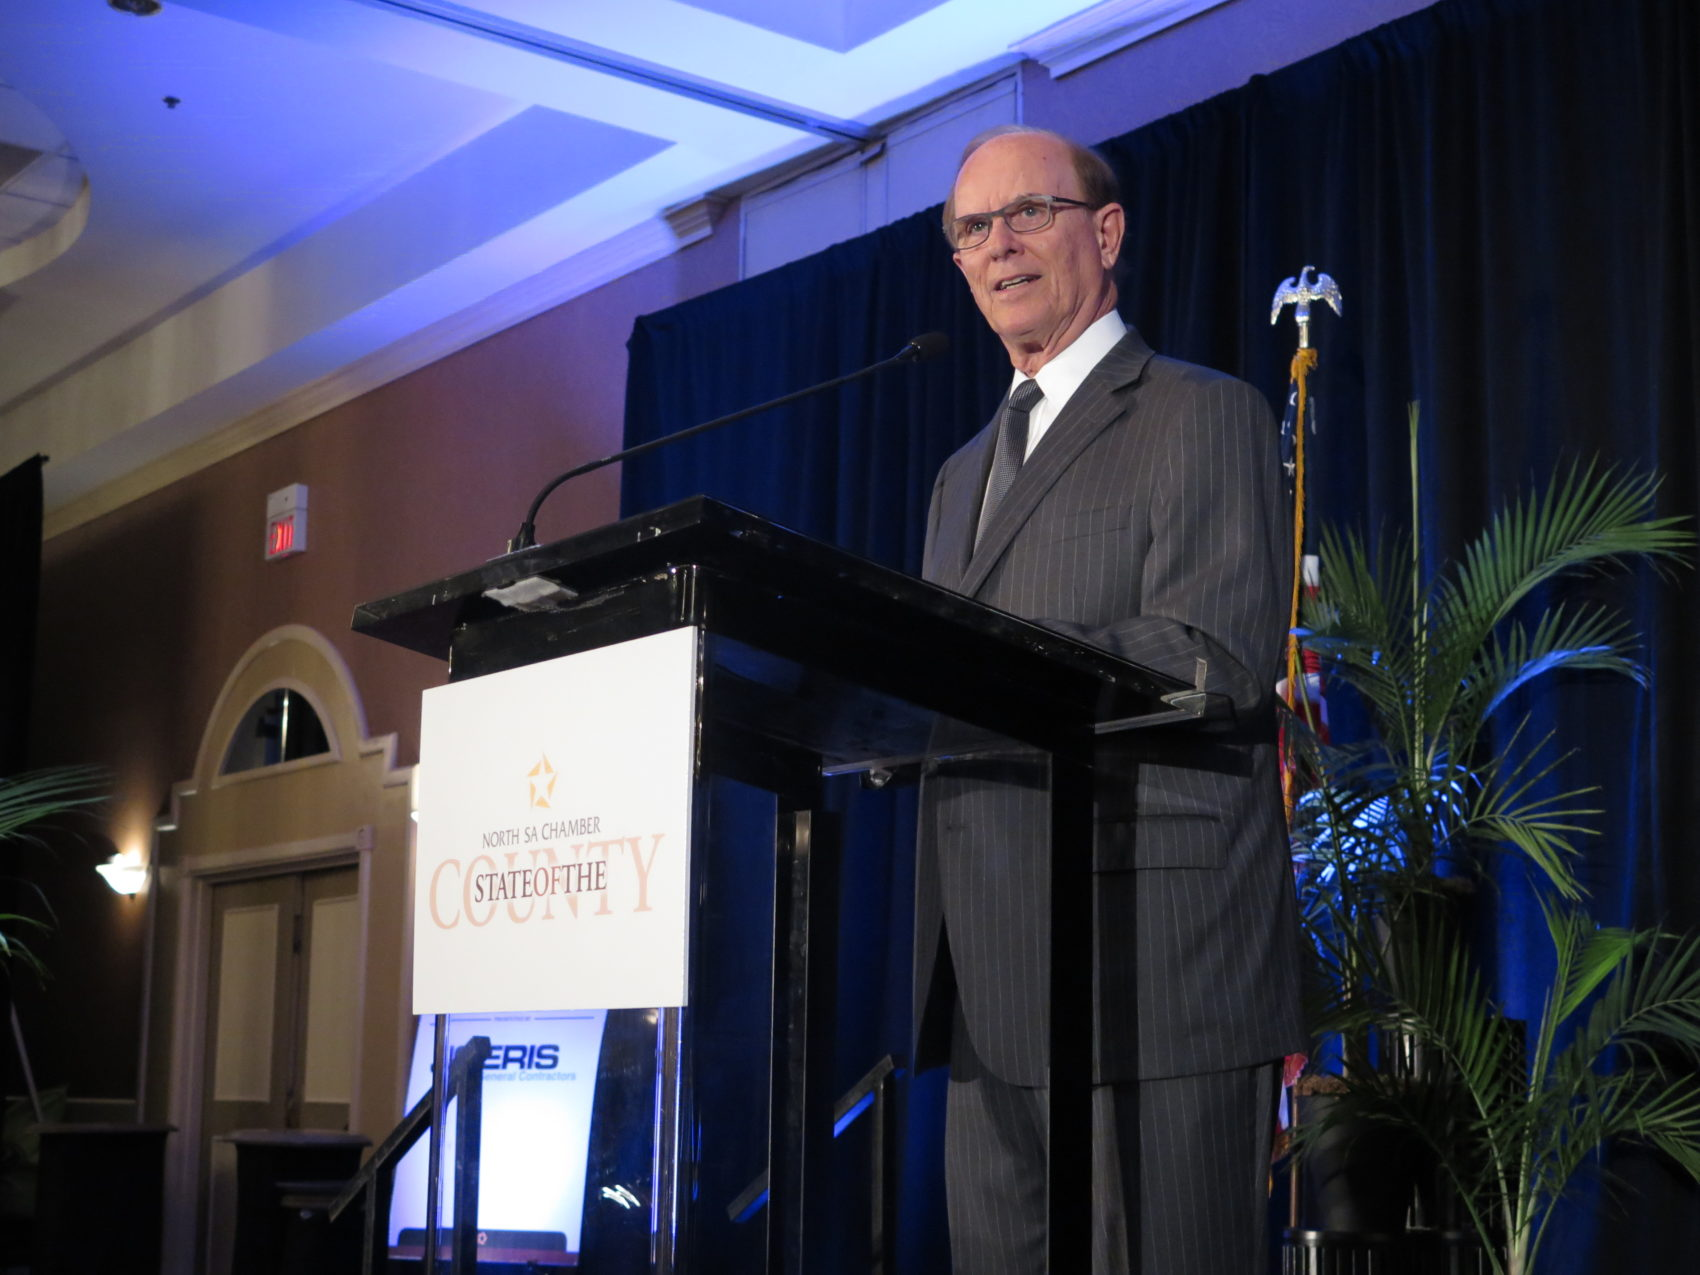 Bexar County Judge Nelson Wolff gives his 2017 State of the County address.